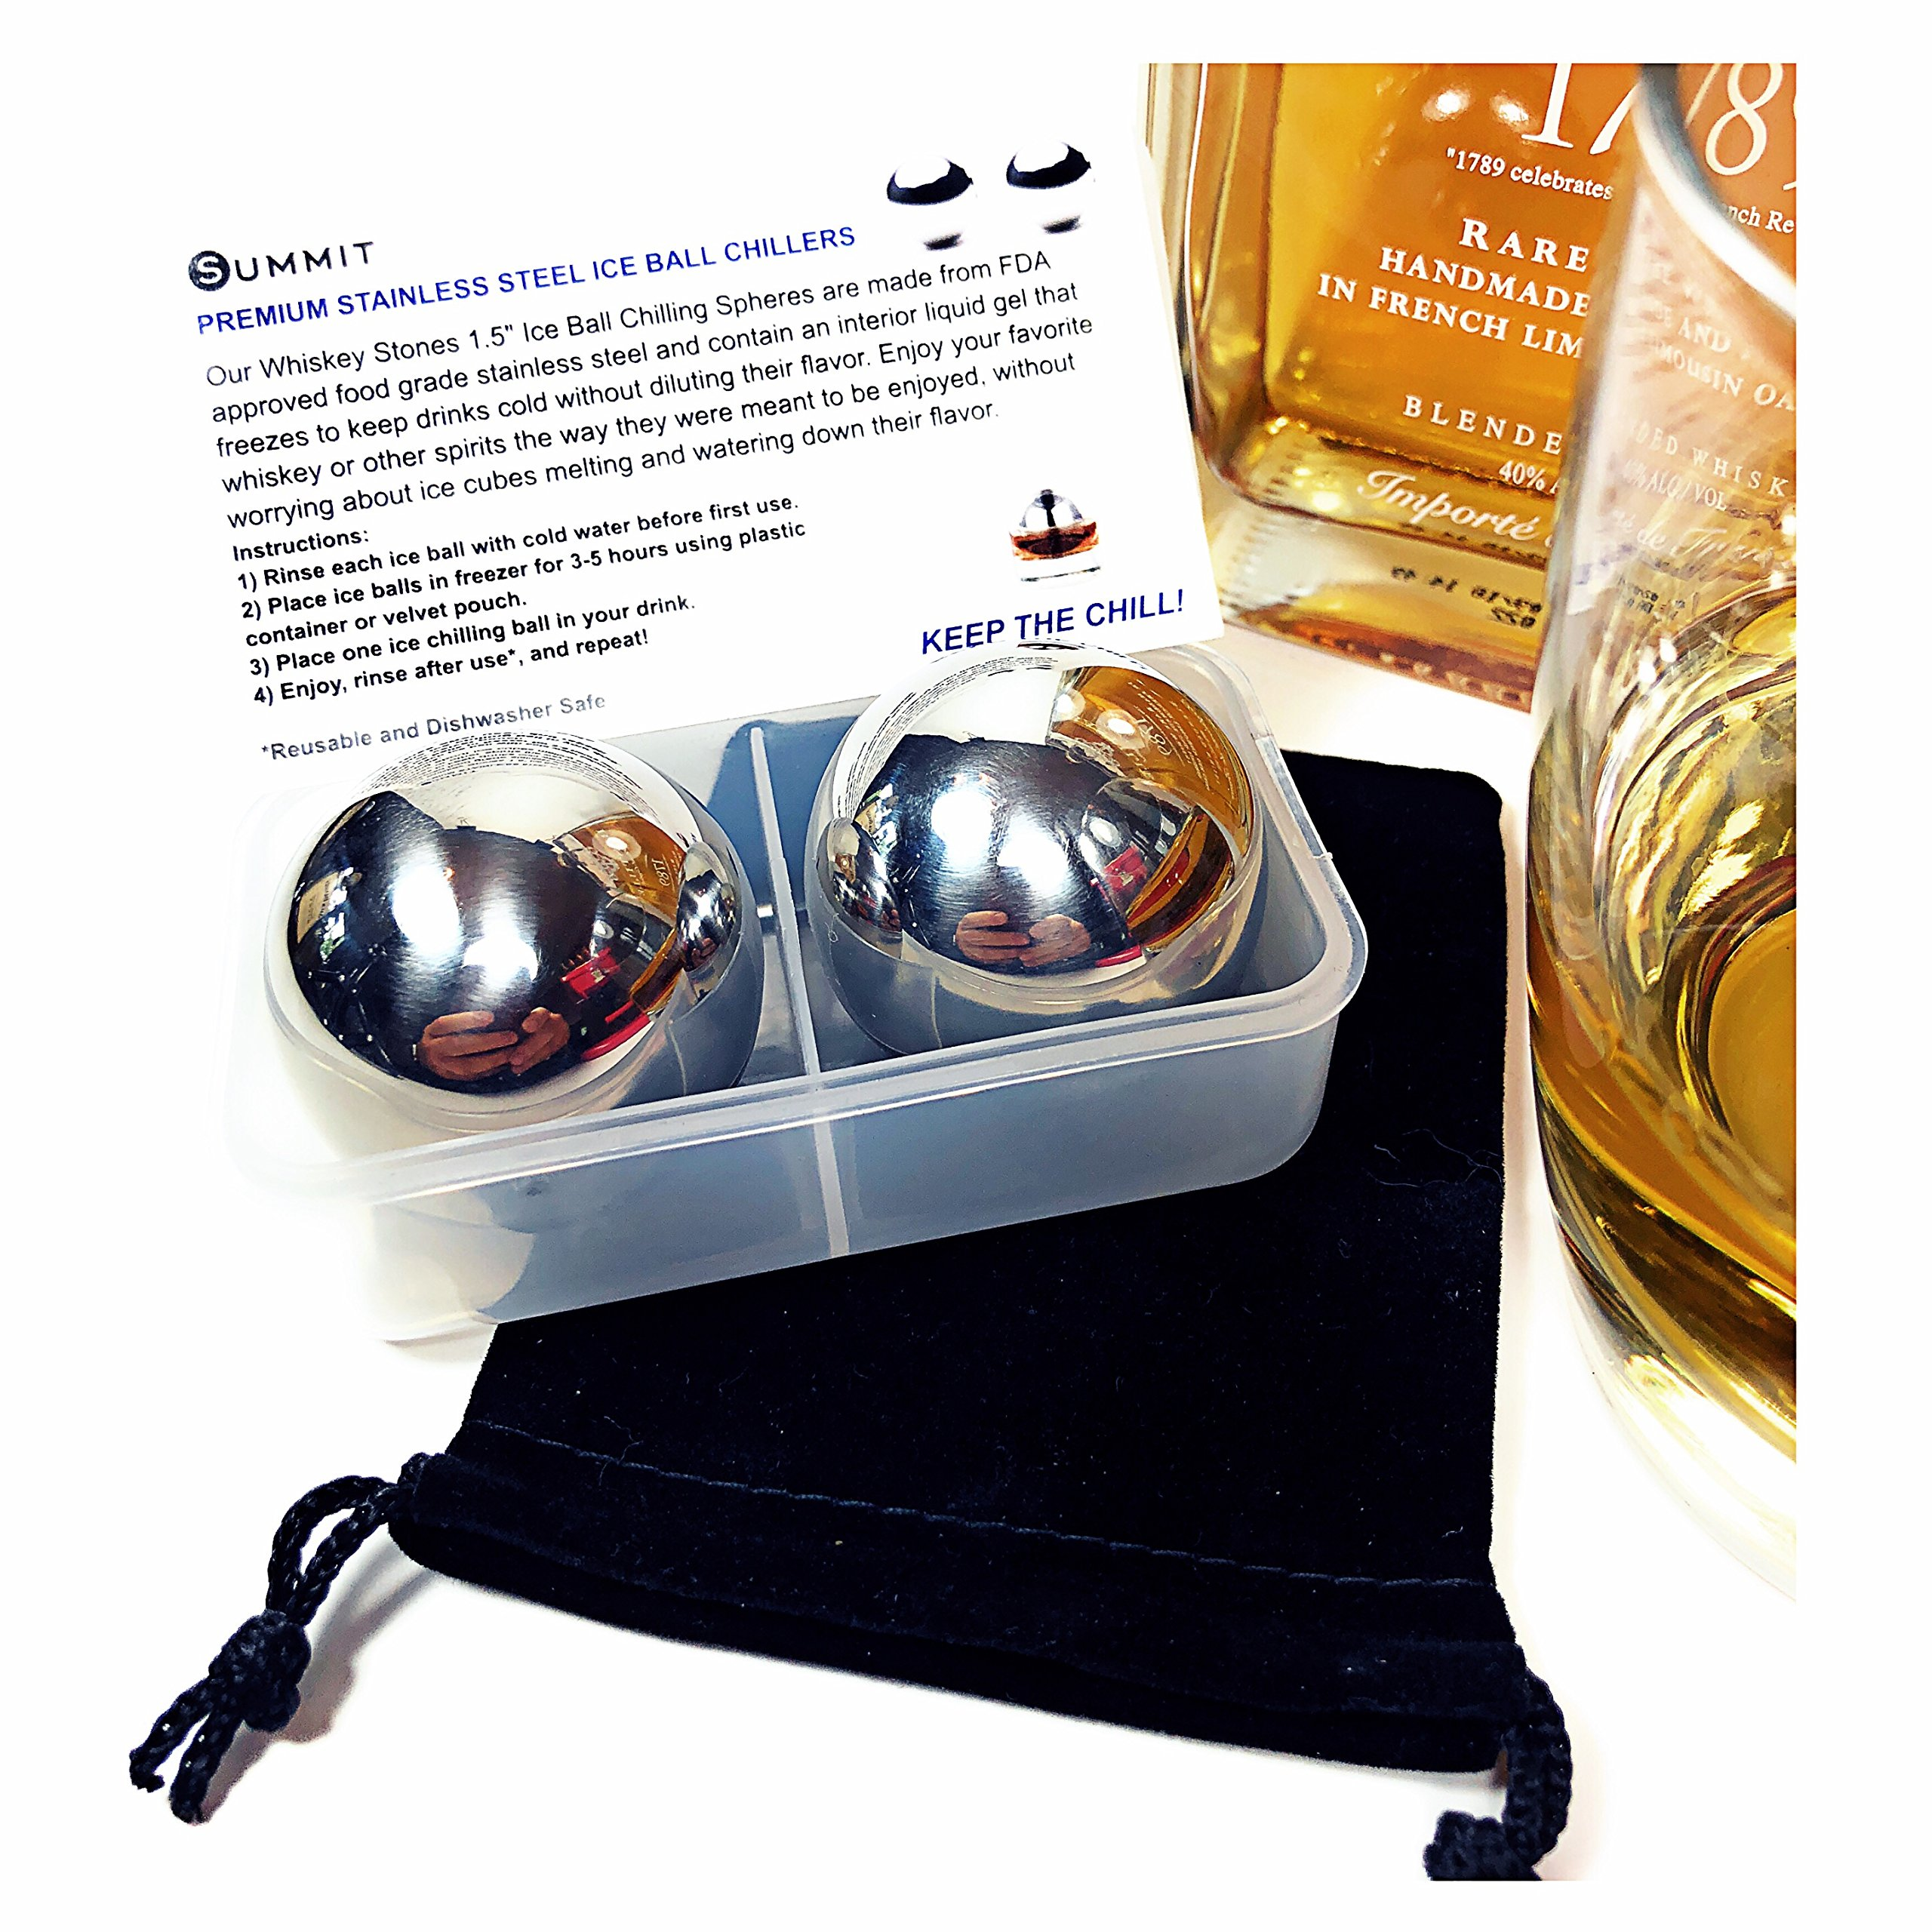 Whiskey Stainless Steel Balls Drink Chillers Gift Set of 2 Large Ice Balls, Velvet Bag, Freezer Container & Product Info Card | Retain Full Flavor & Chill | Whiskey Wine Vodka Spirits Coolers SUMMIT